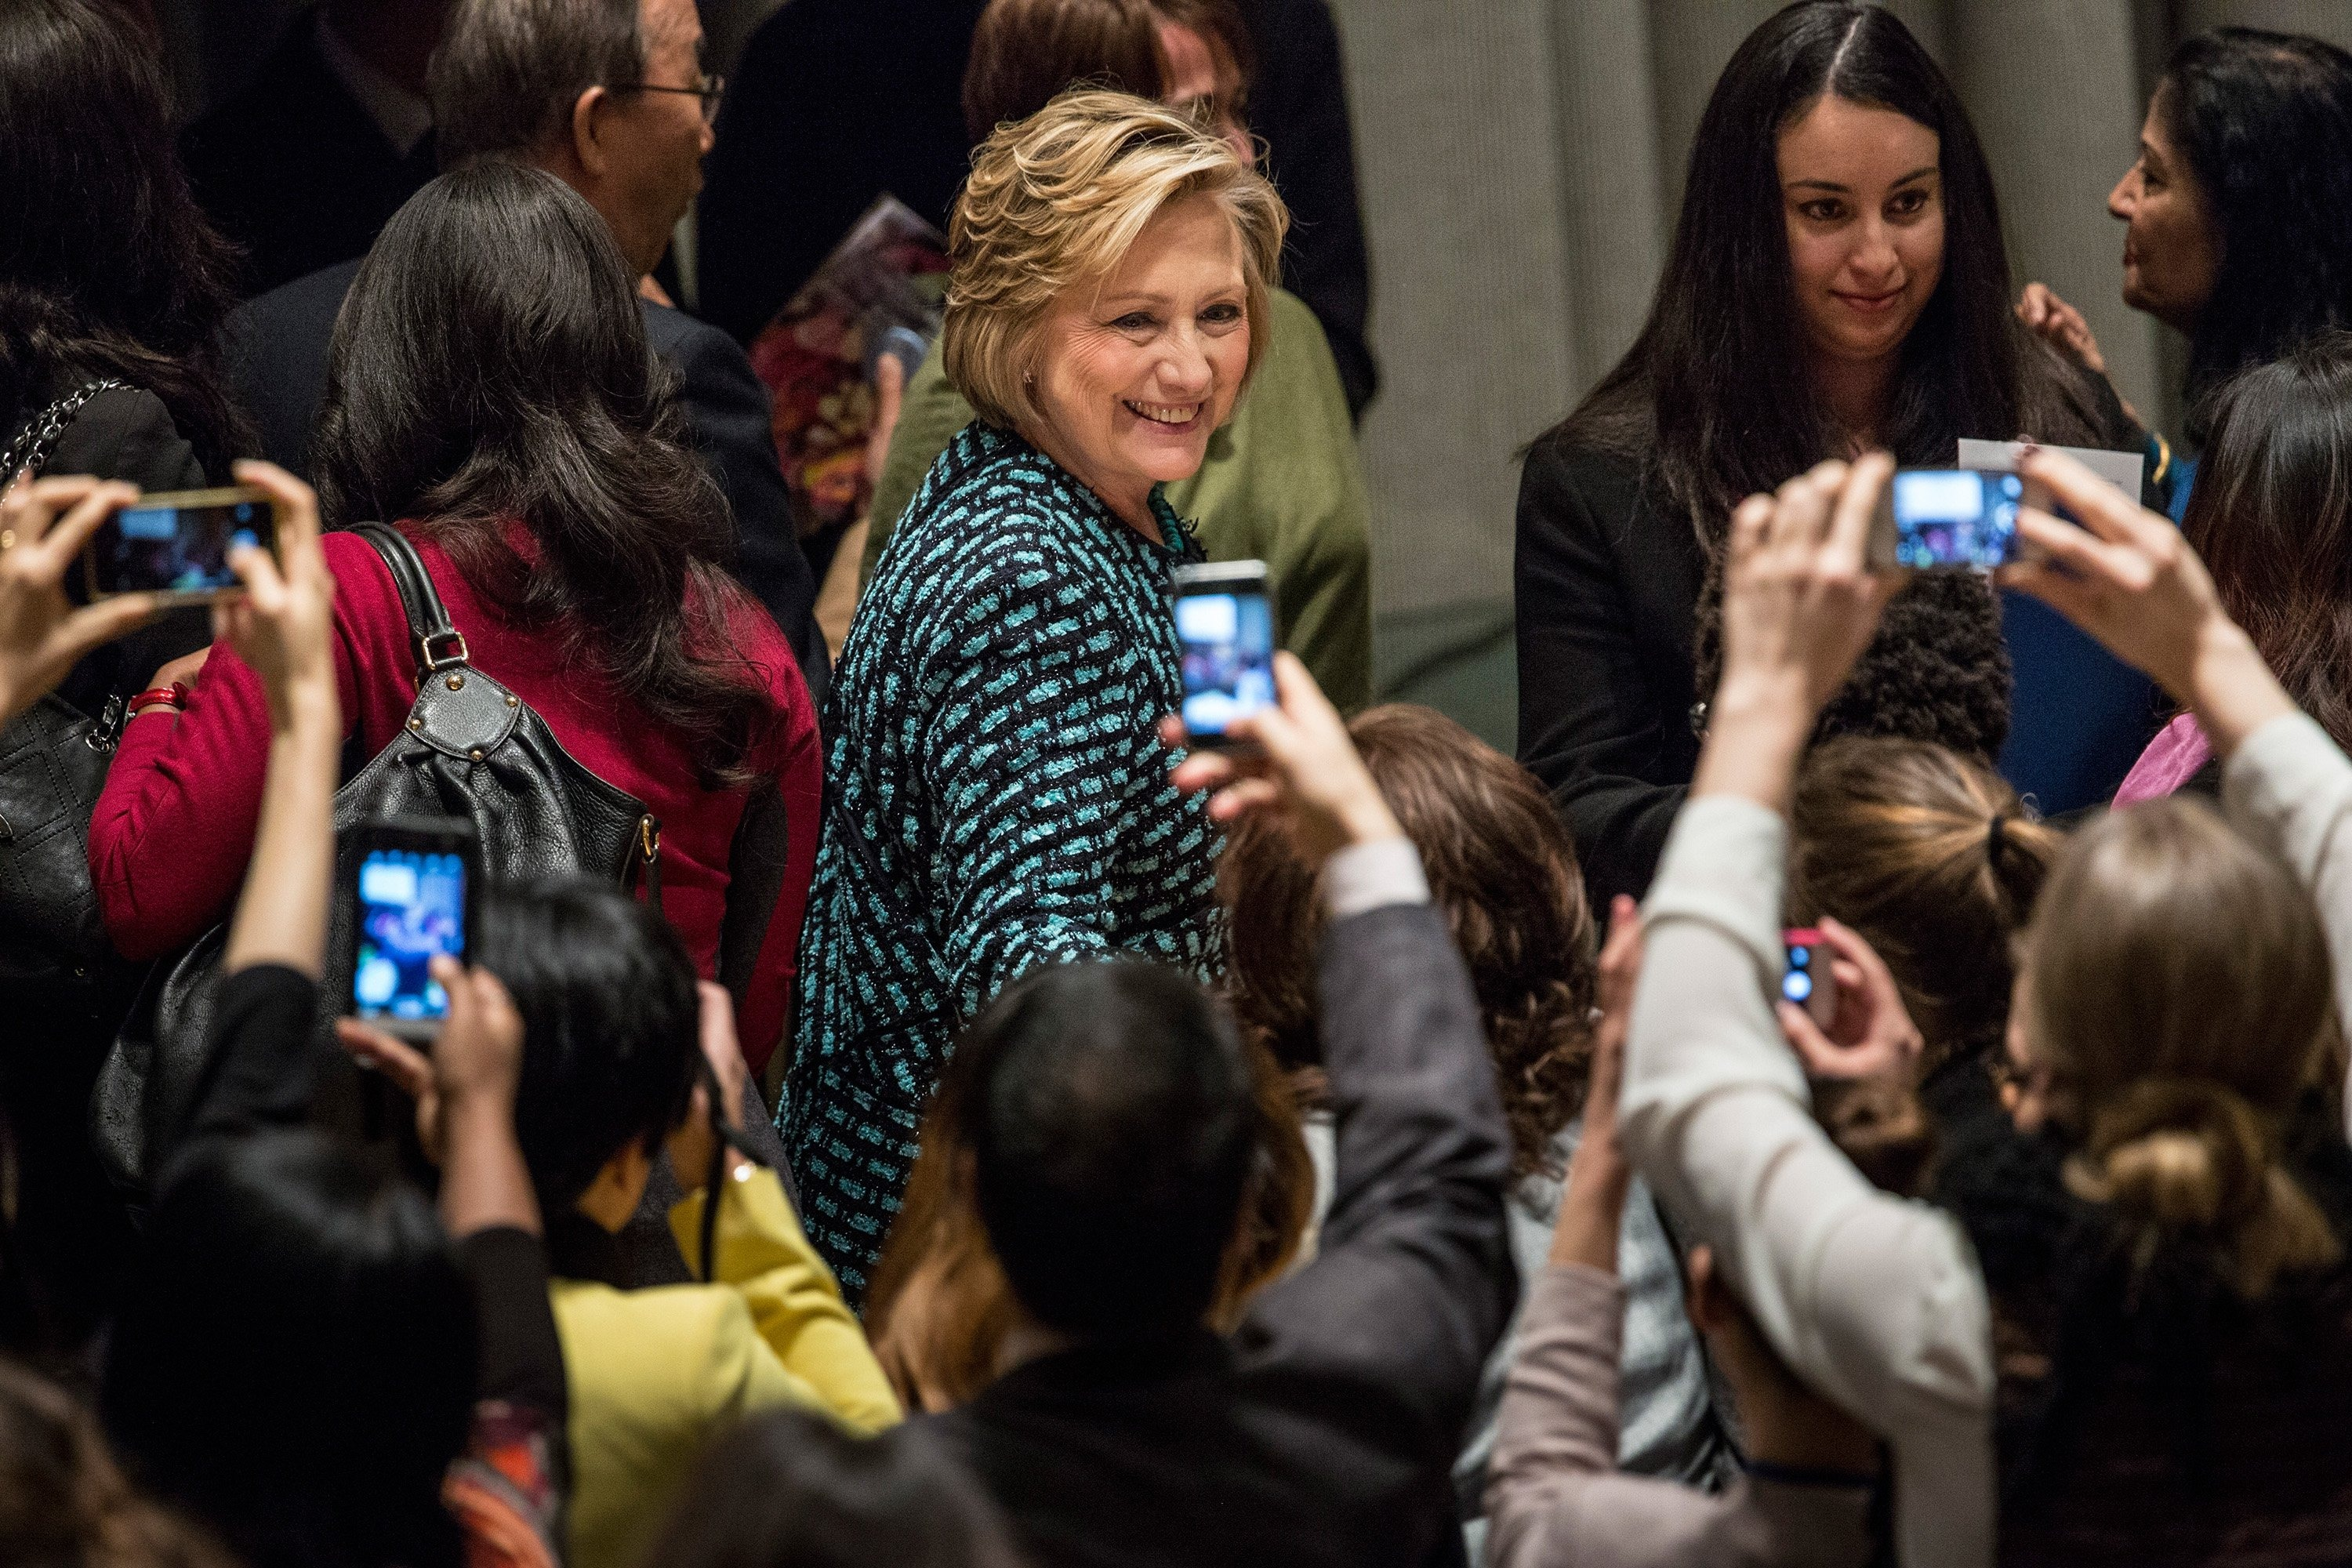 Former Secretary of State Hillary Clinton leaves an event at the U.N. in New York City on March 7, 2014